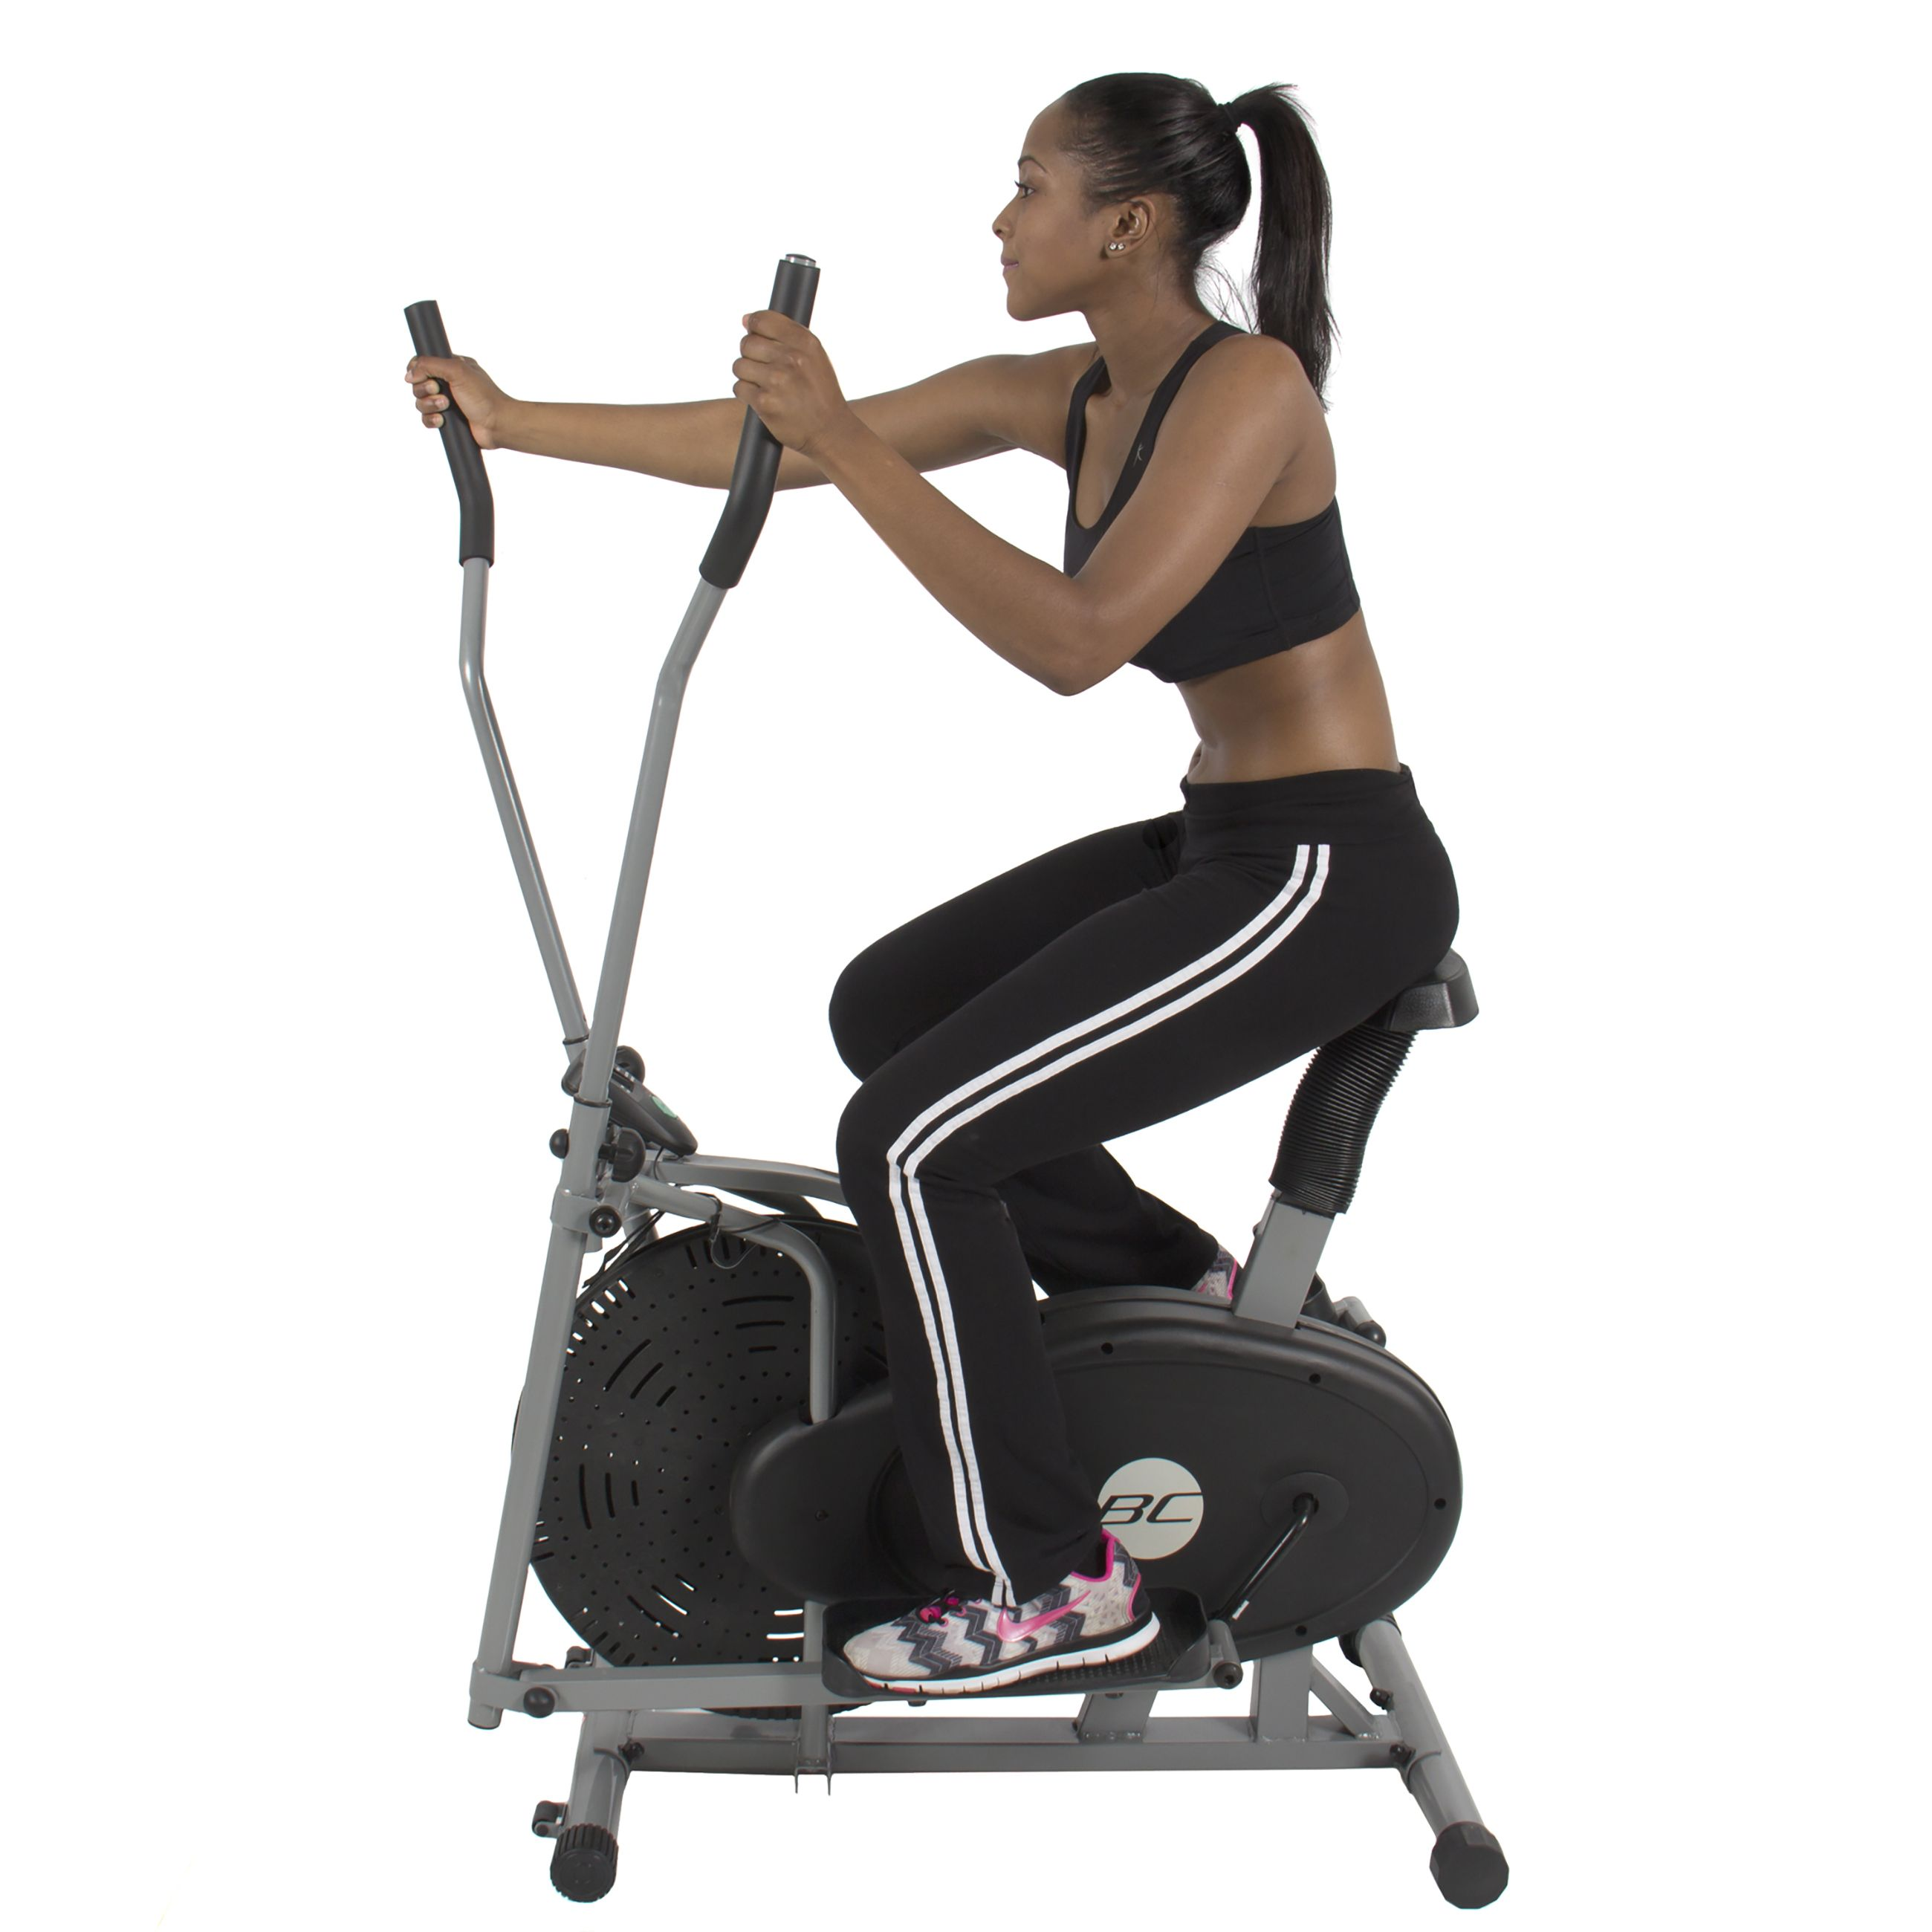 elliptical bike 2 in 1 cross trainer exercise fitness machine home gym workout review best. Black Bedroom Furniture Sets. Home Design Ideas